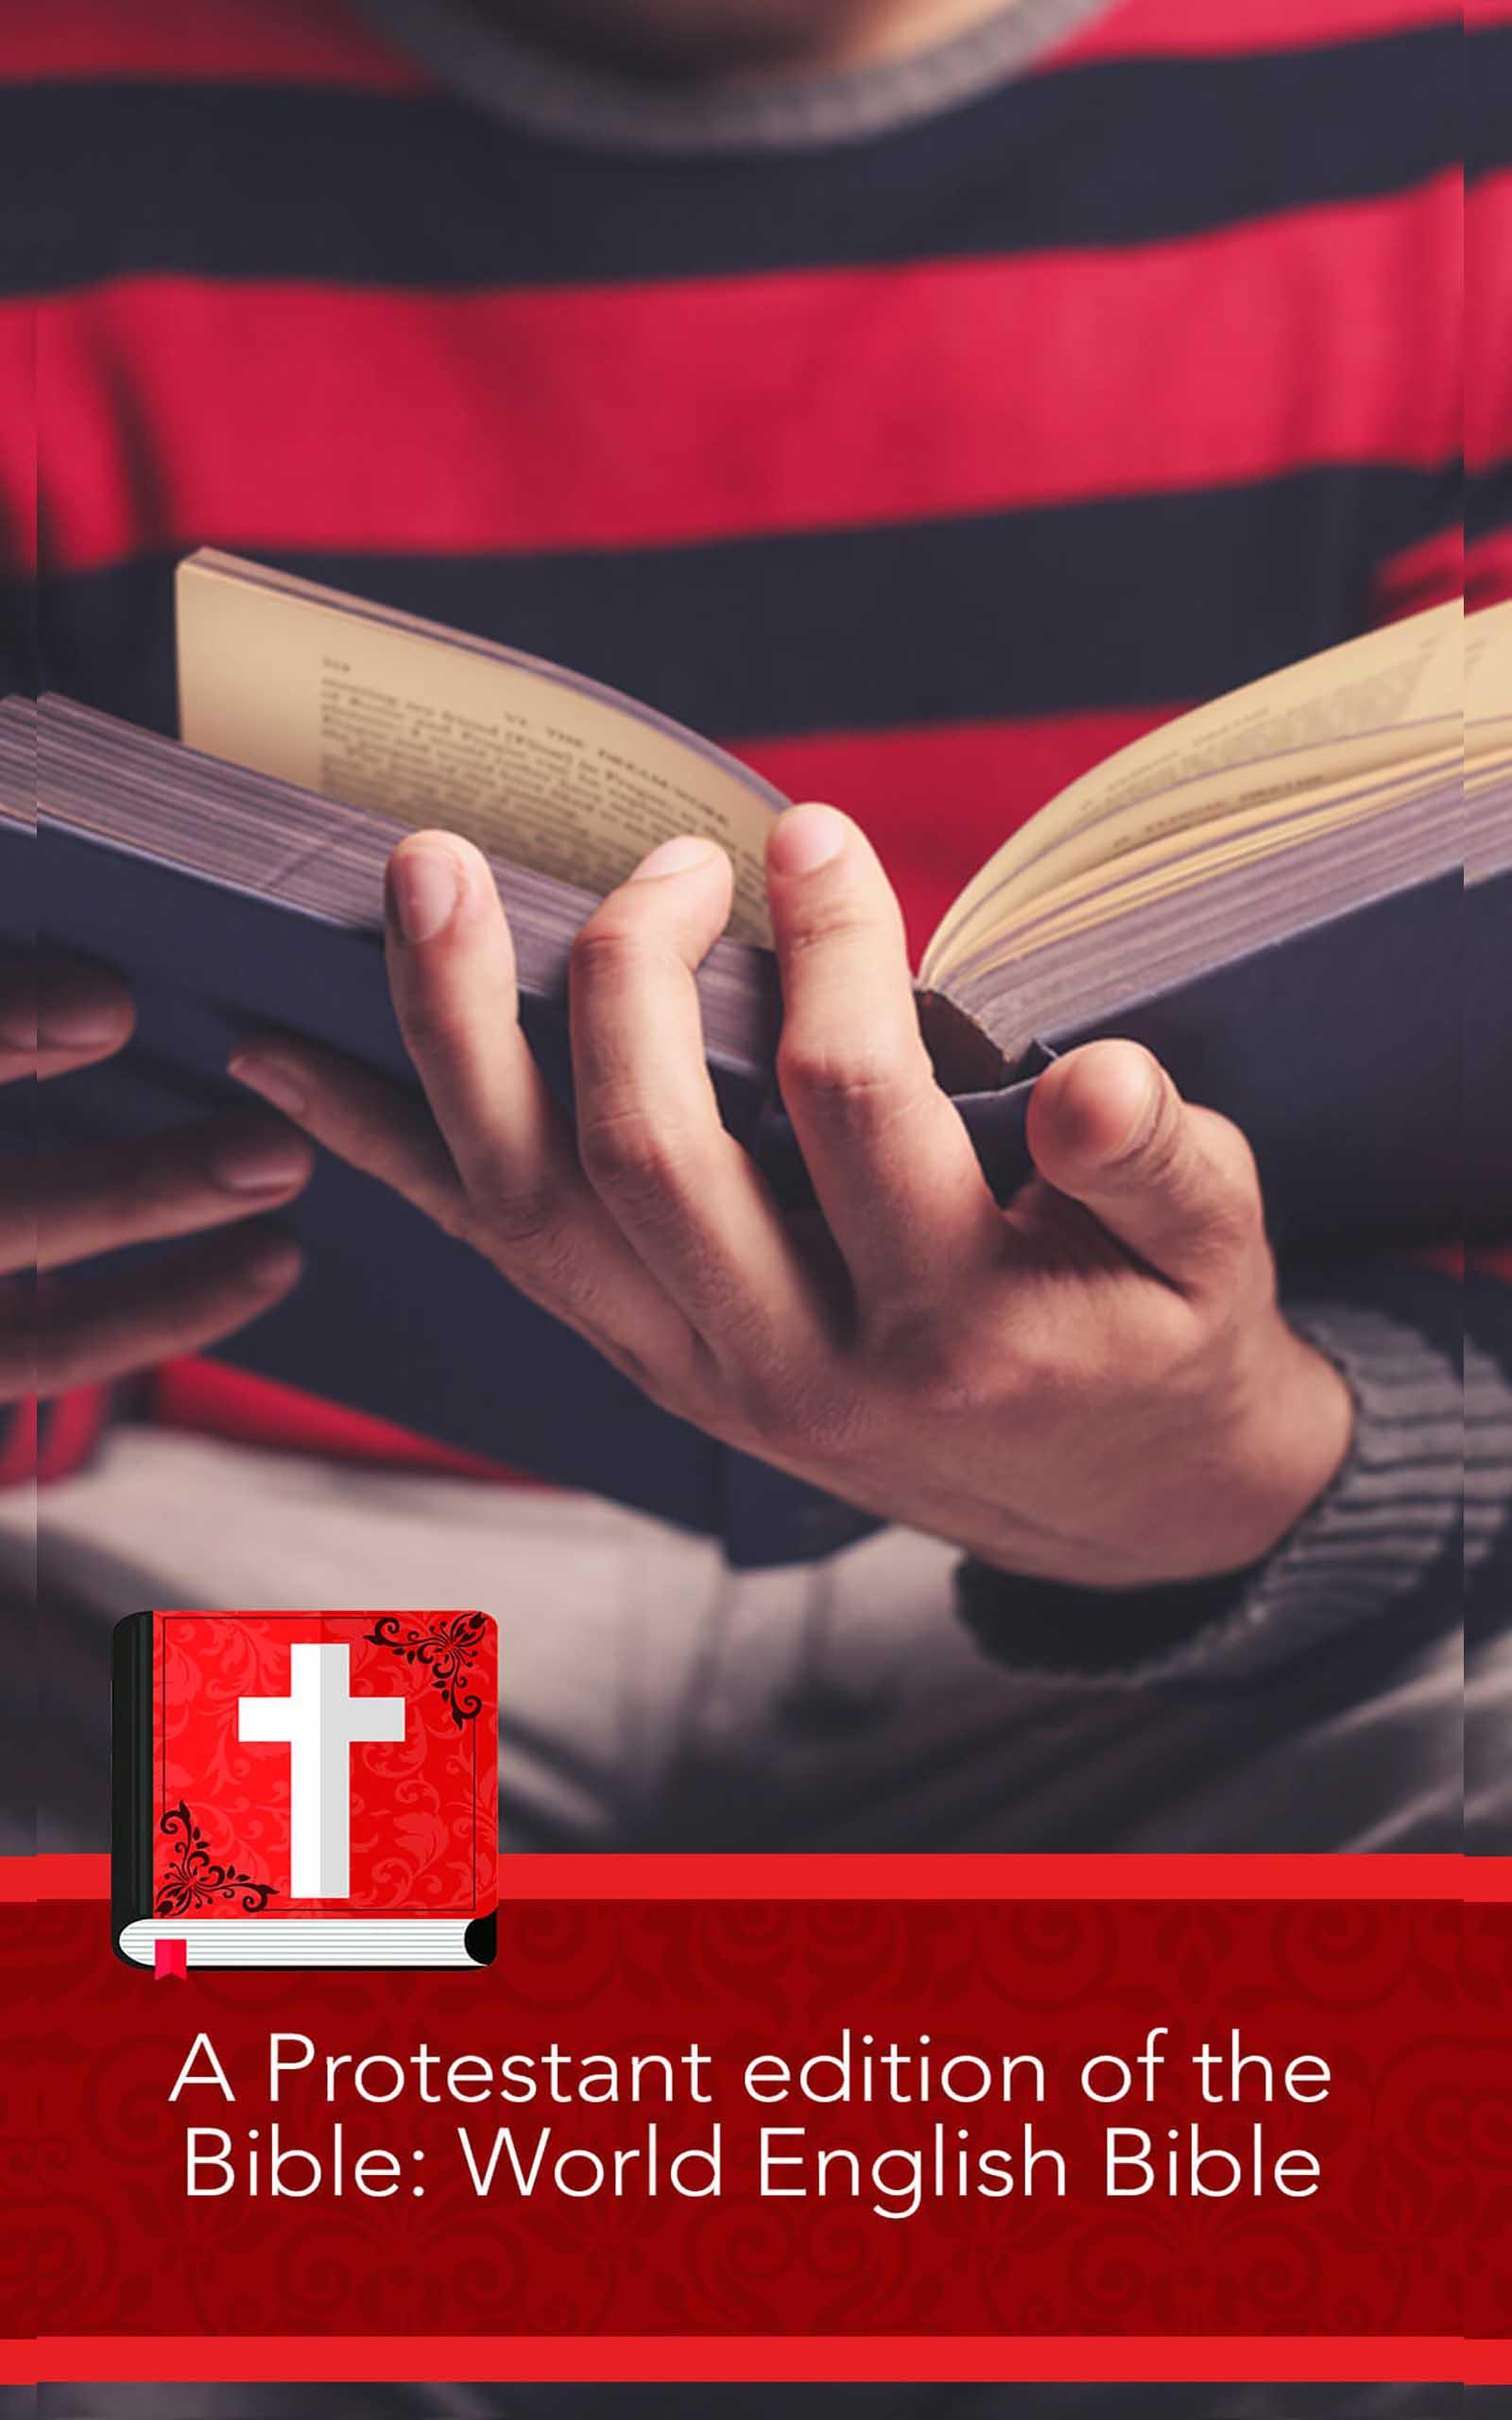 Pentecostal Bible App for Android - APK Download